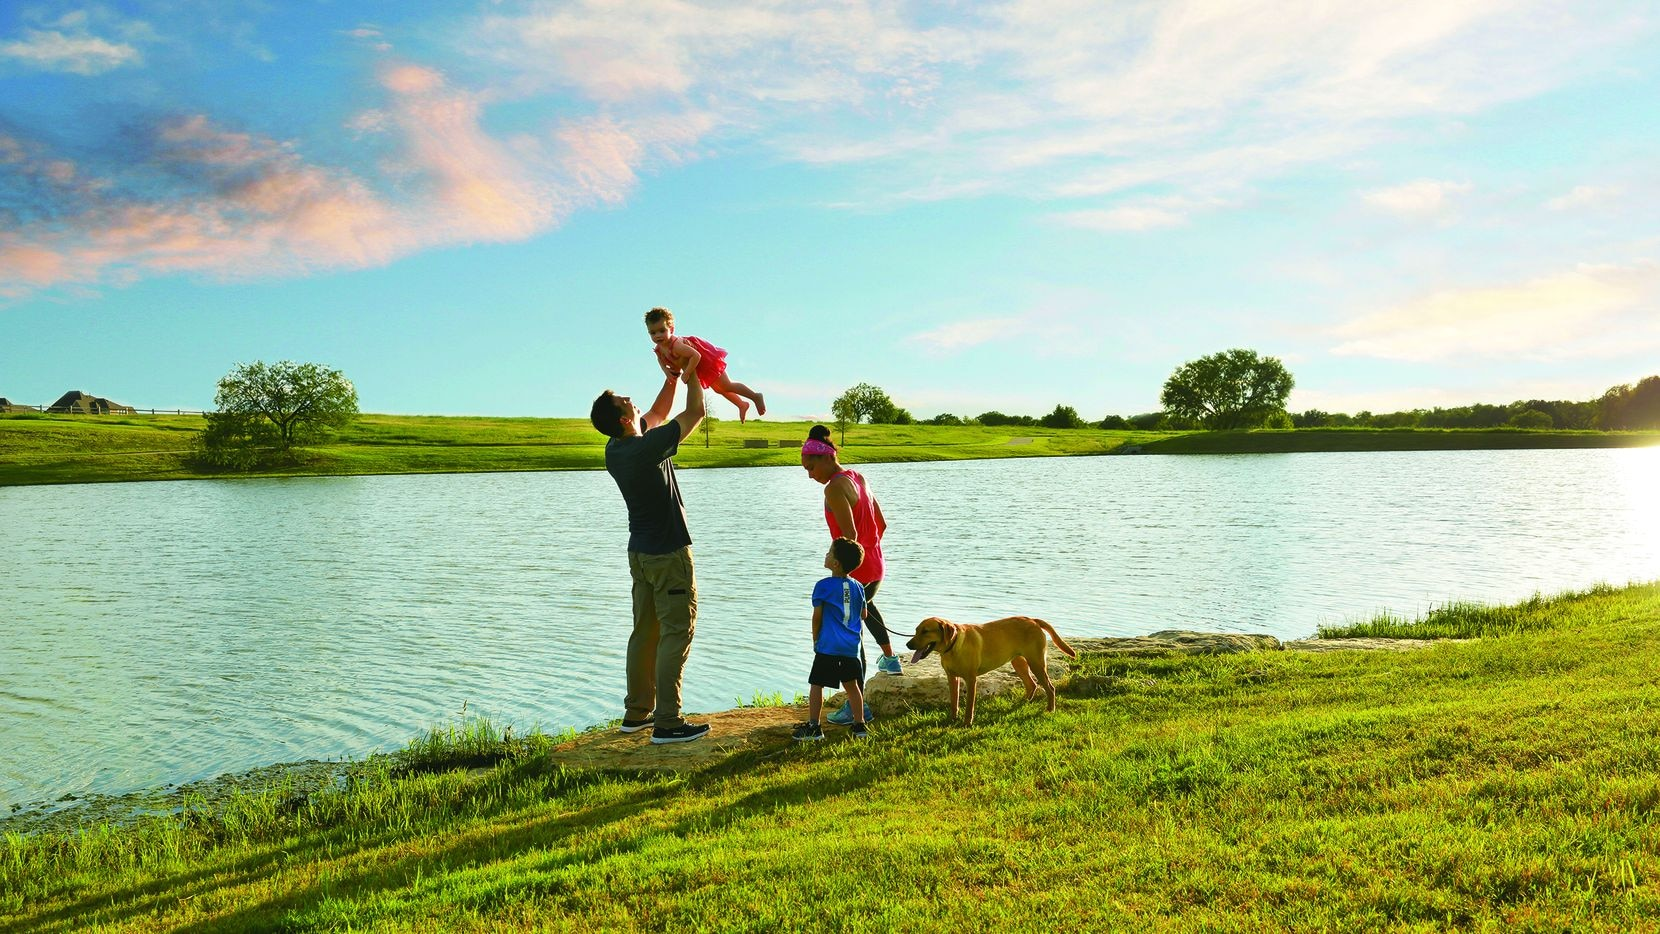 Windsong Ranch in Prosper offers numerous community amenities and homes priced from the high $200s to over $1 million.